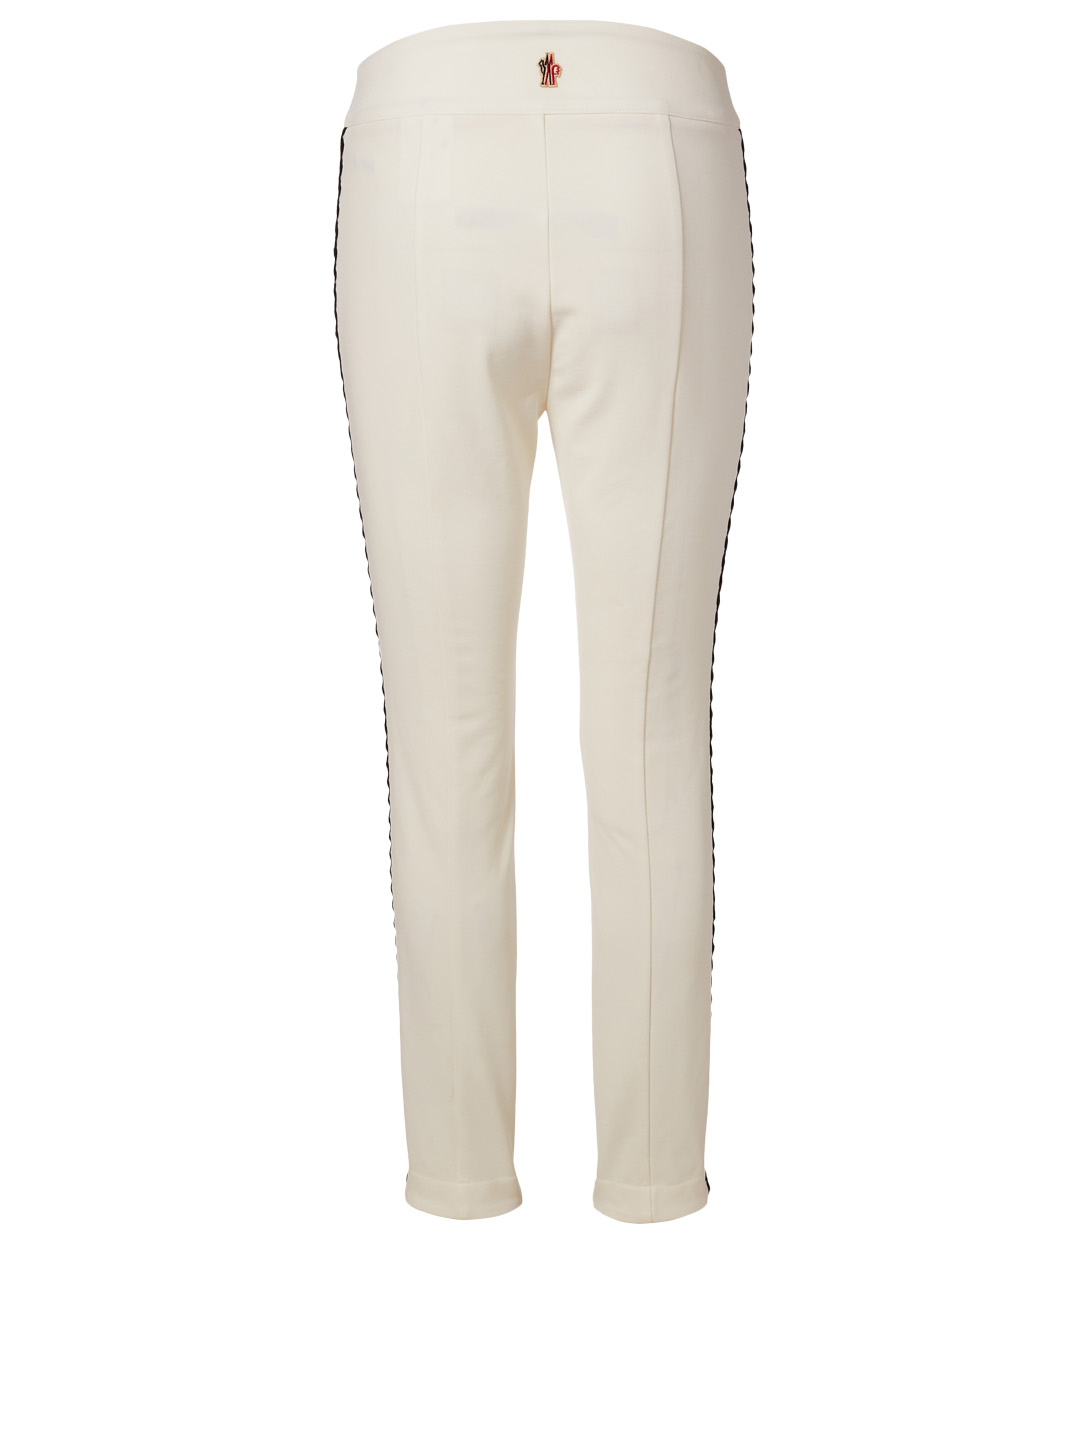 MONCLER GRENOBLE Bourget Ski Pants With Scallop Trim Women's White